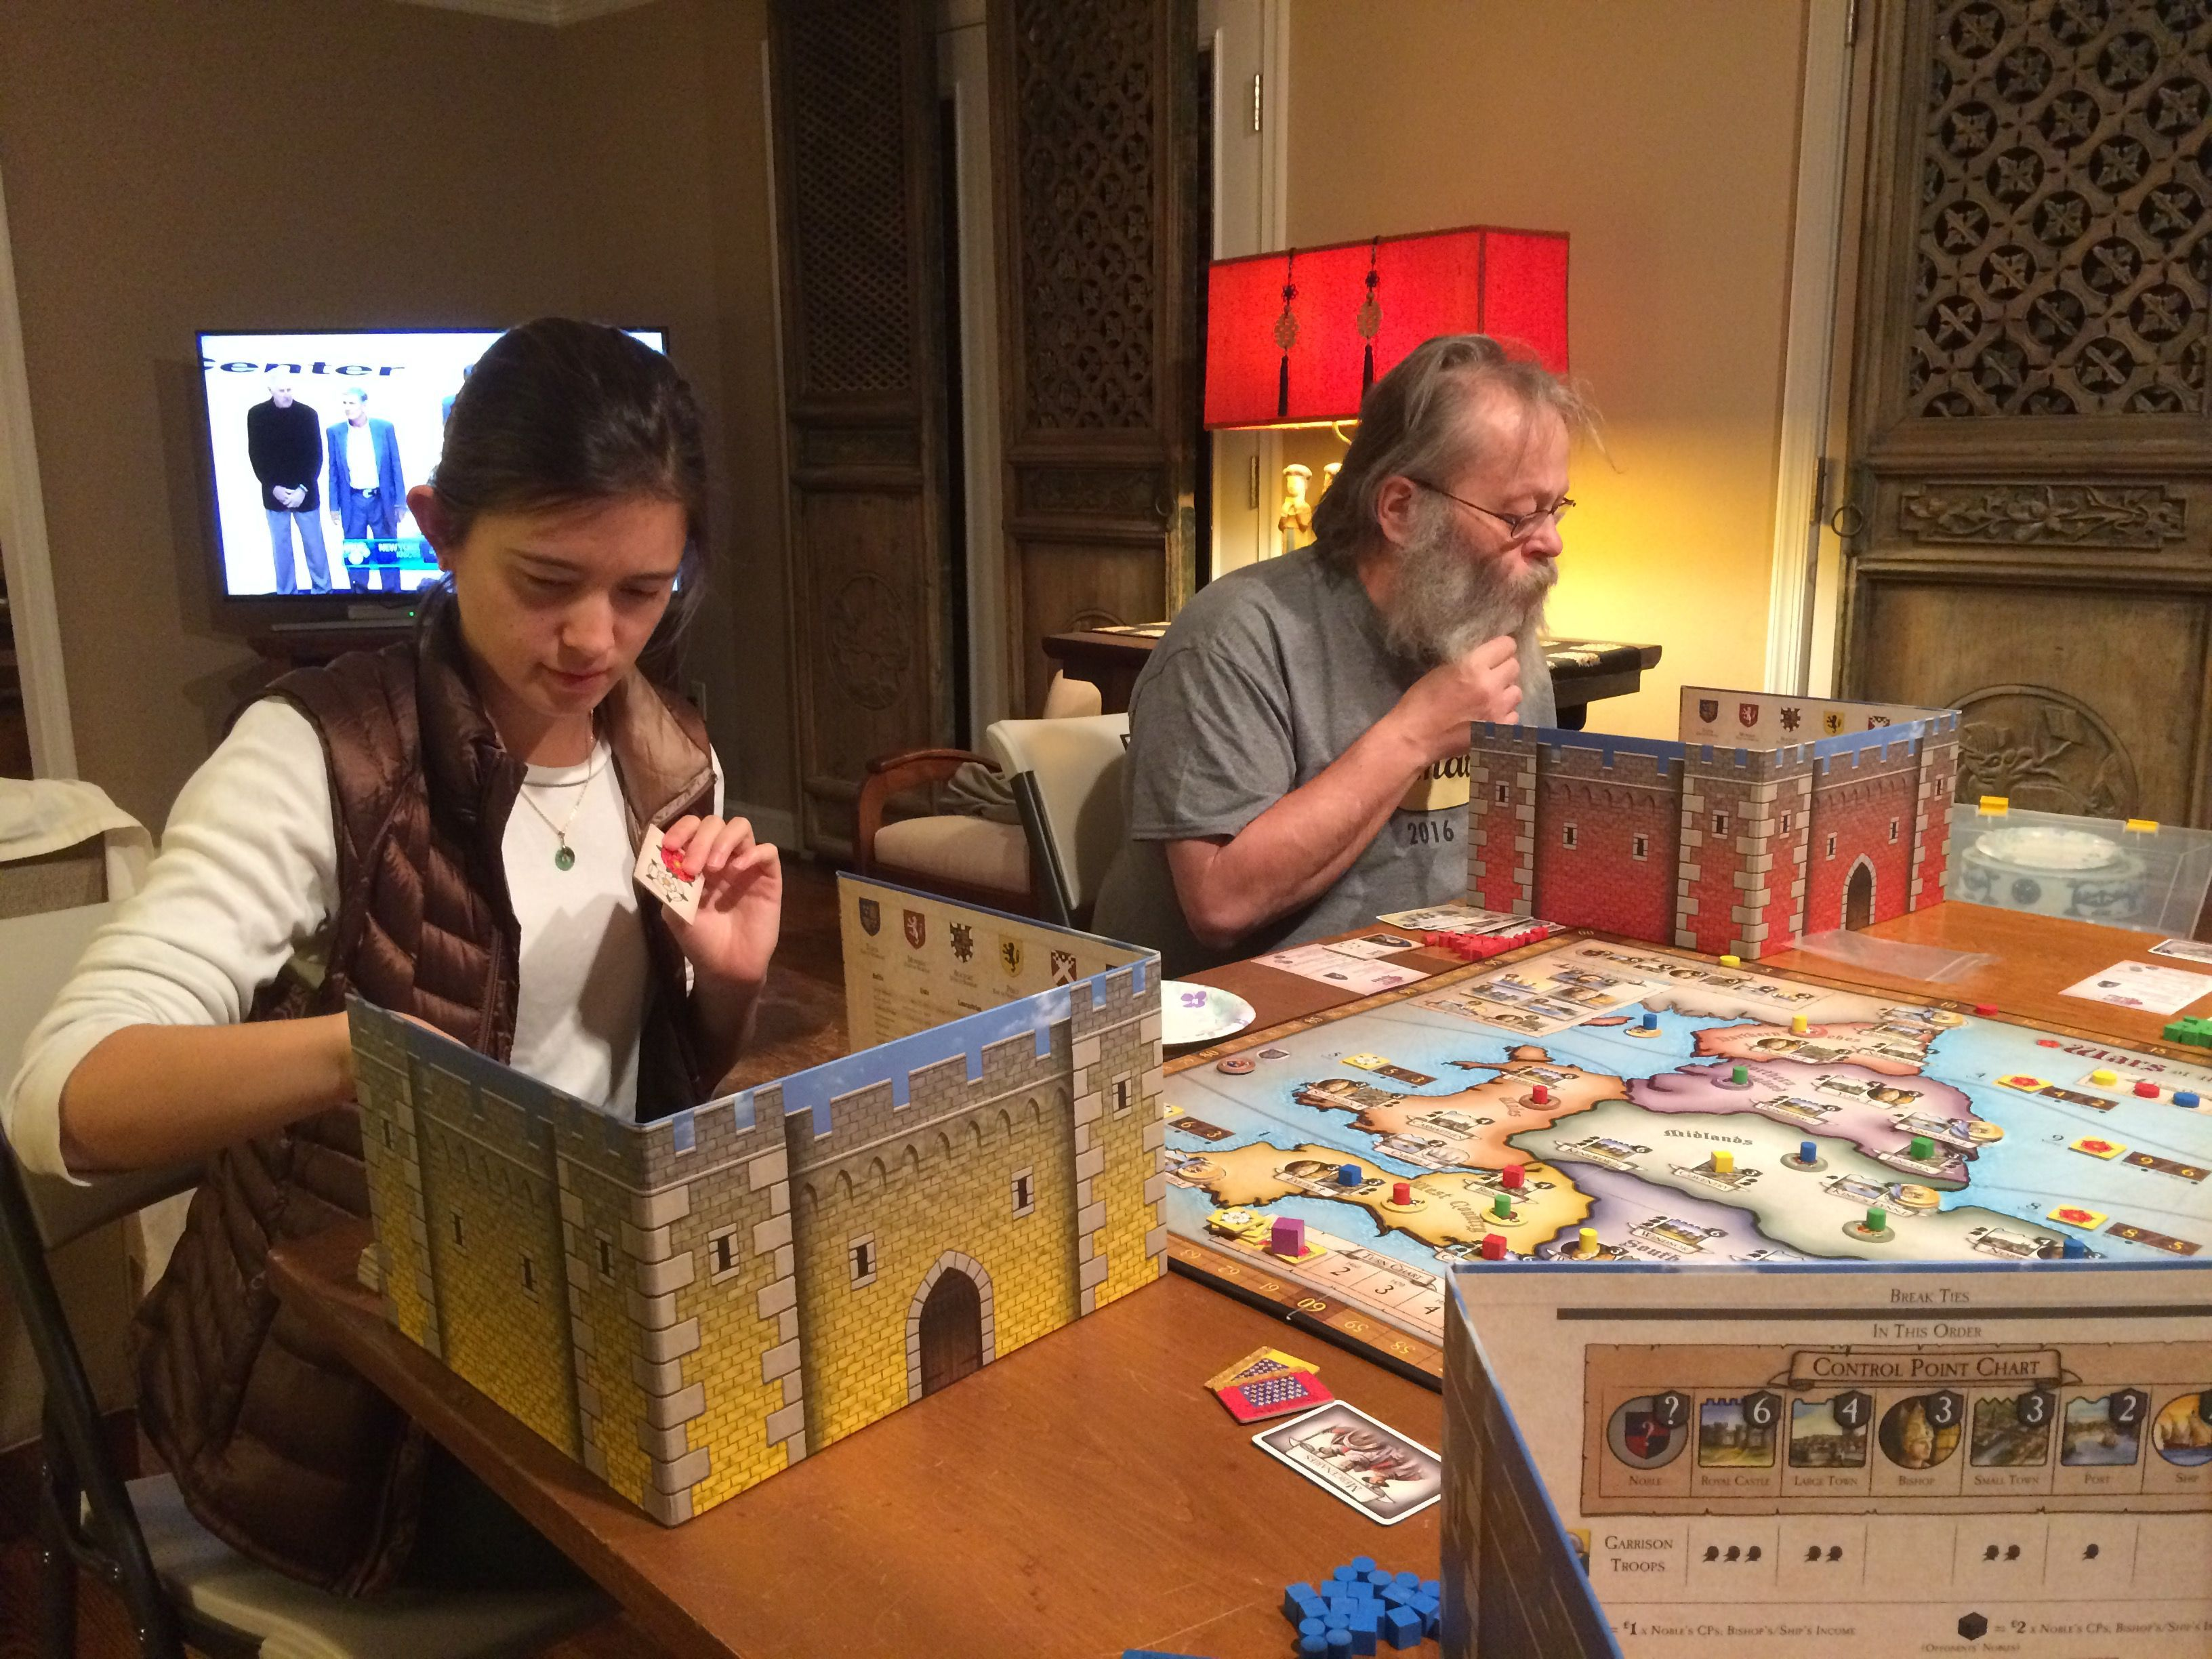 Boardgaming in Falls Church --> Boardgaming in Kazakhstan